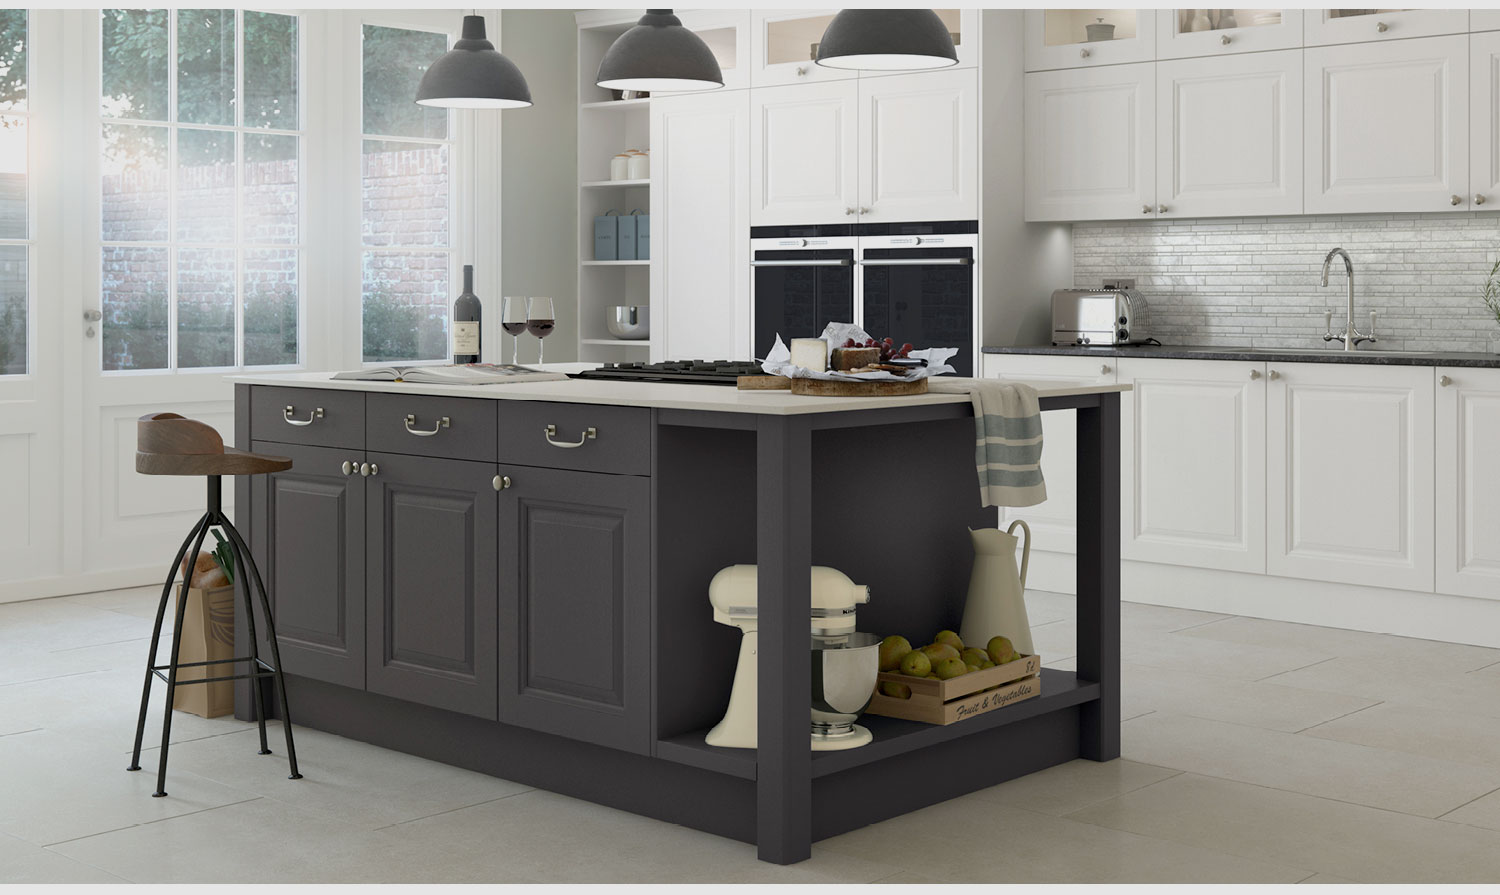 town and country kitchens luxury fitted kitchens luxury for living south wales 6312